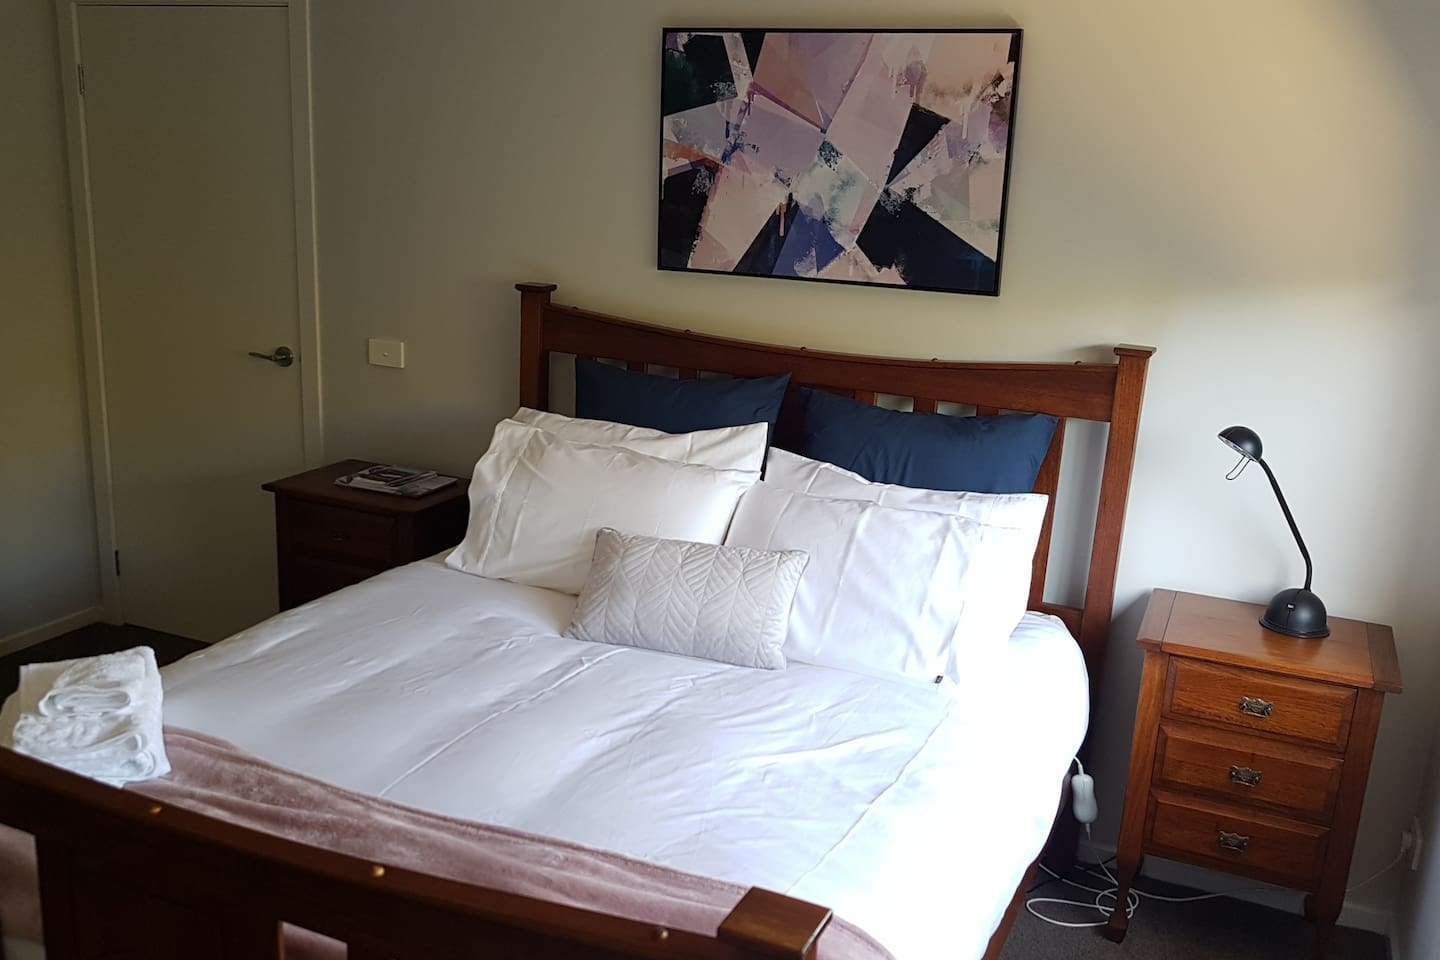 A comfortable quiet bedroom, new queen size mattress, and a wardrobe for guests to use.